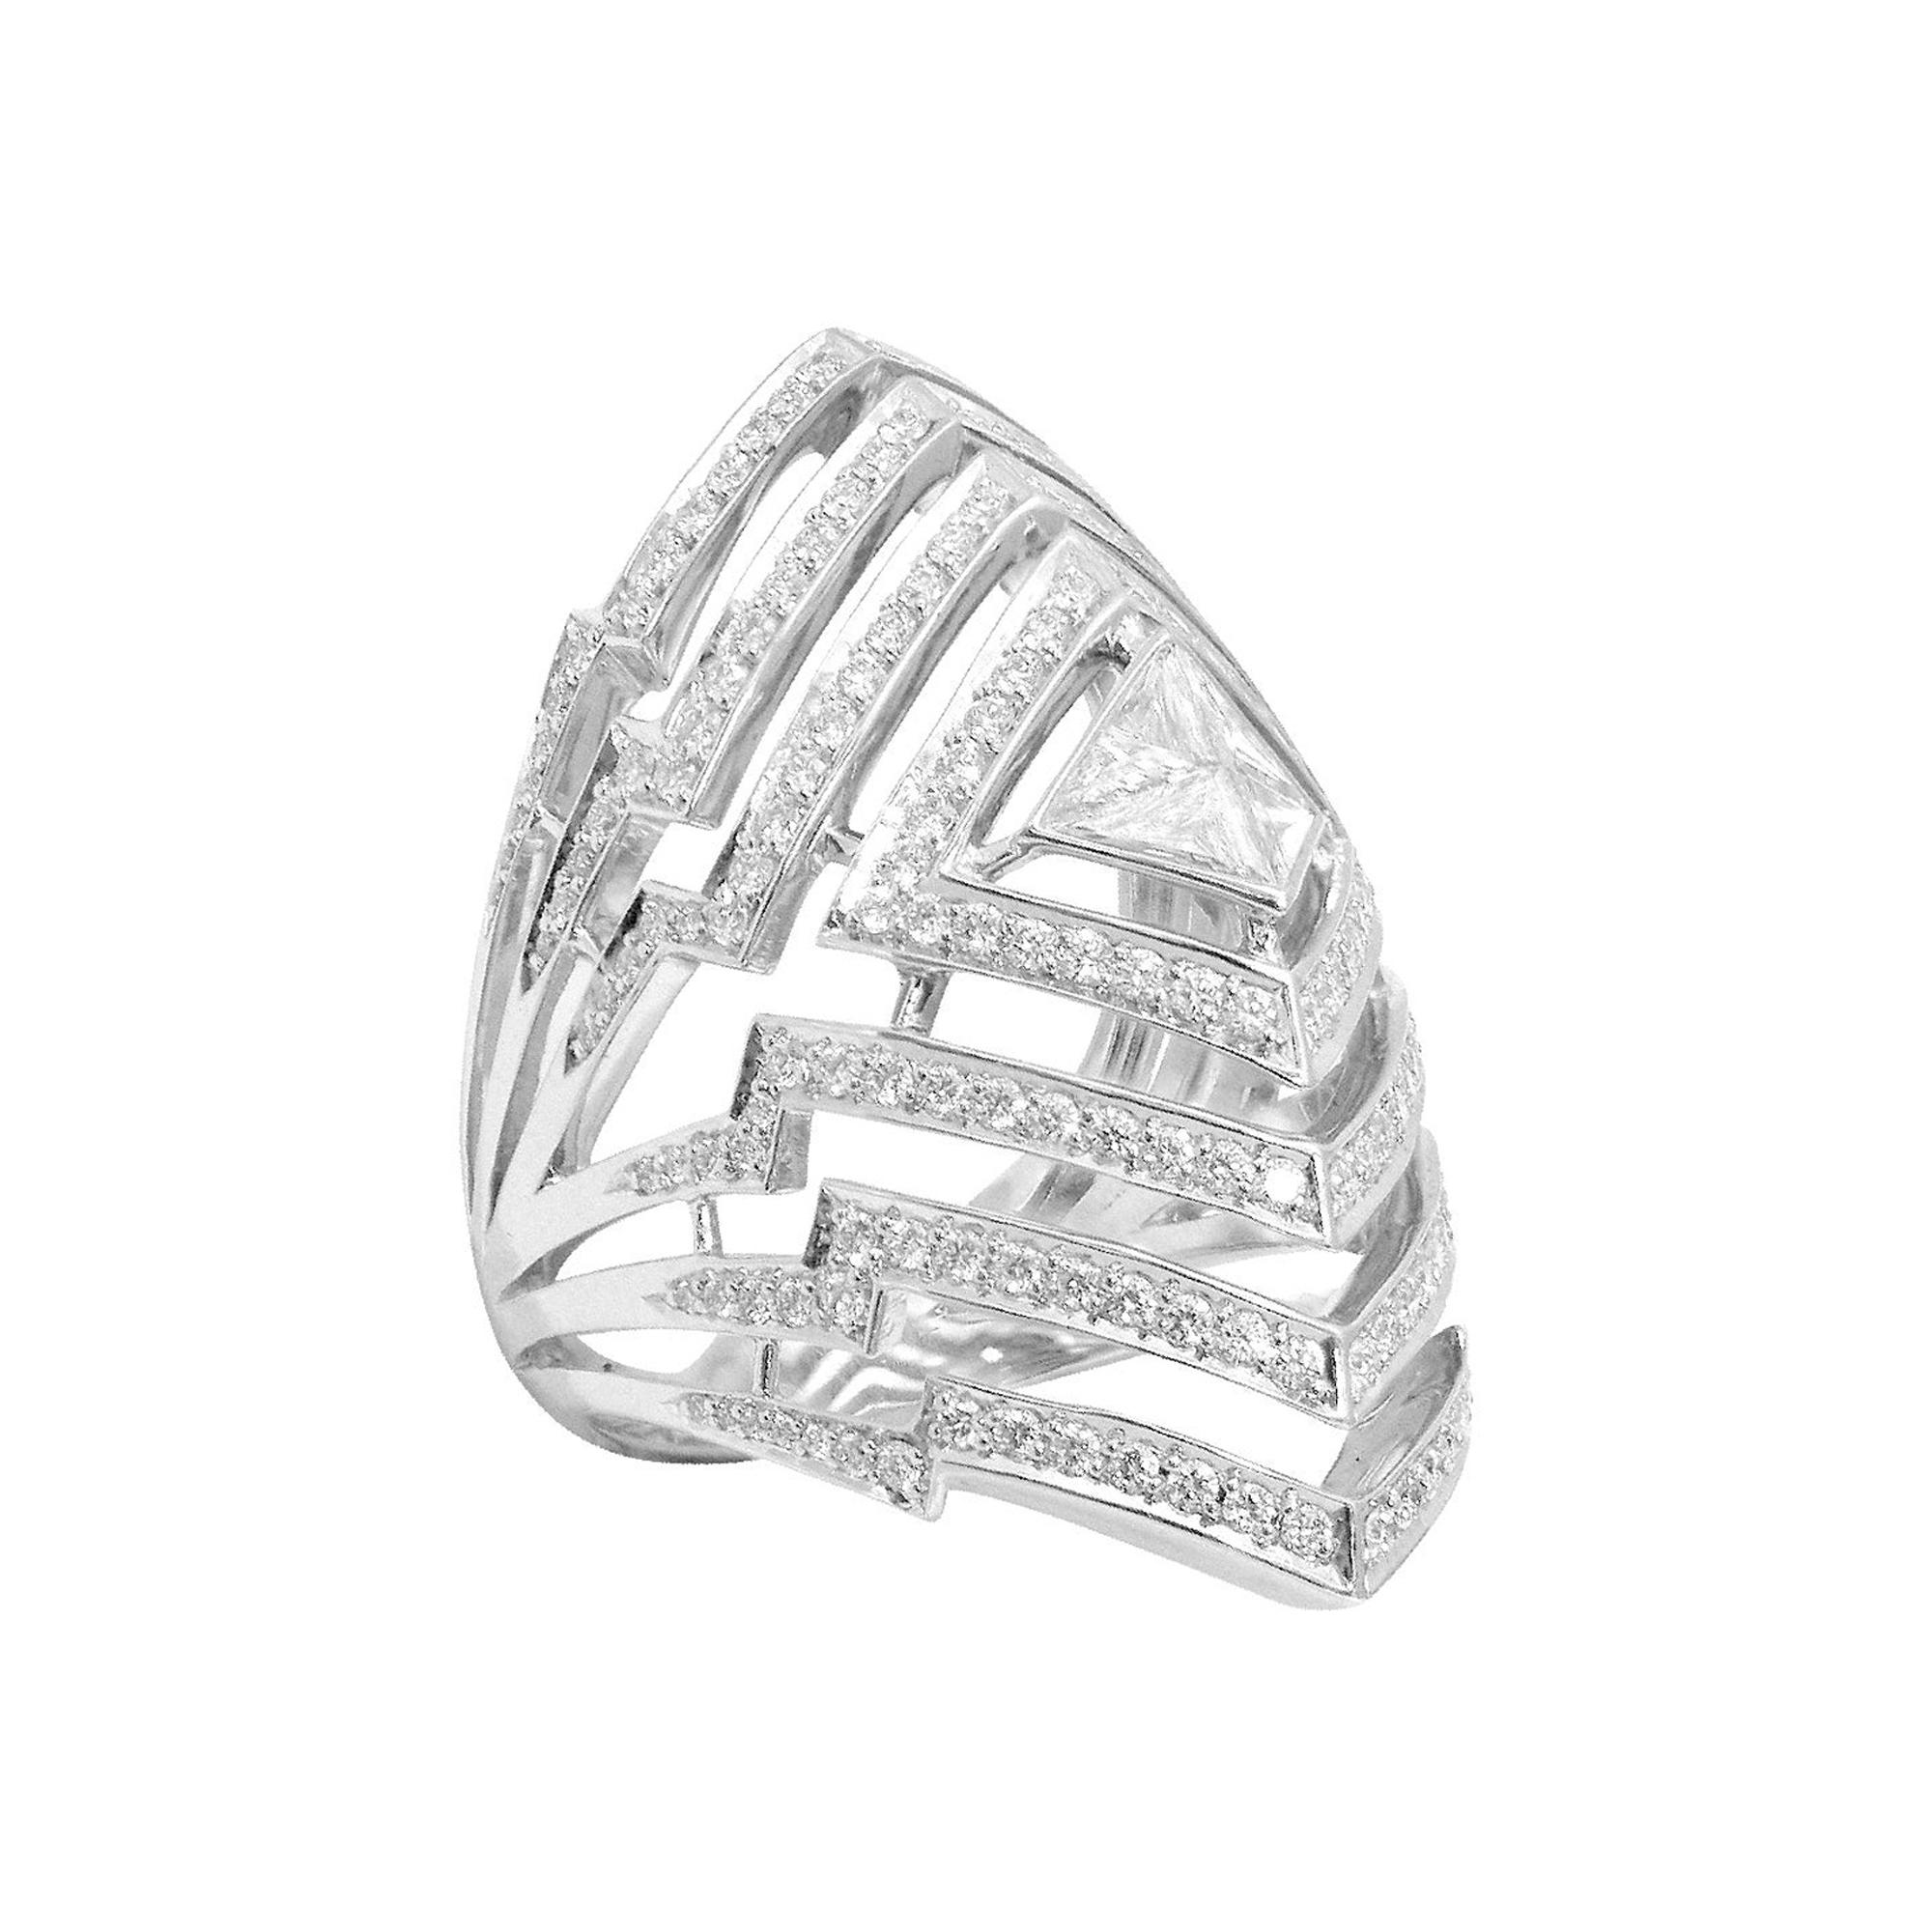 Stephen Webster Lady Stardust 18 Carat White Gold and White Diamond Pavé Ring